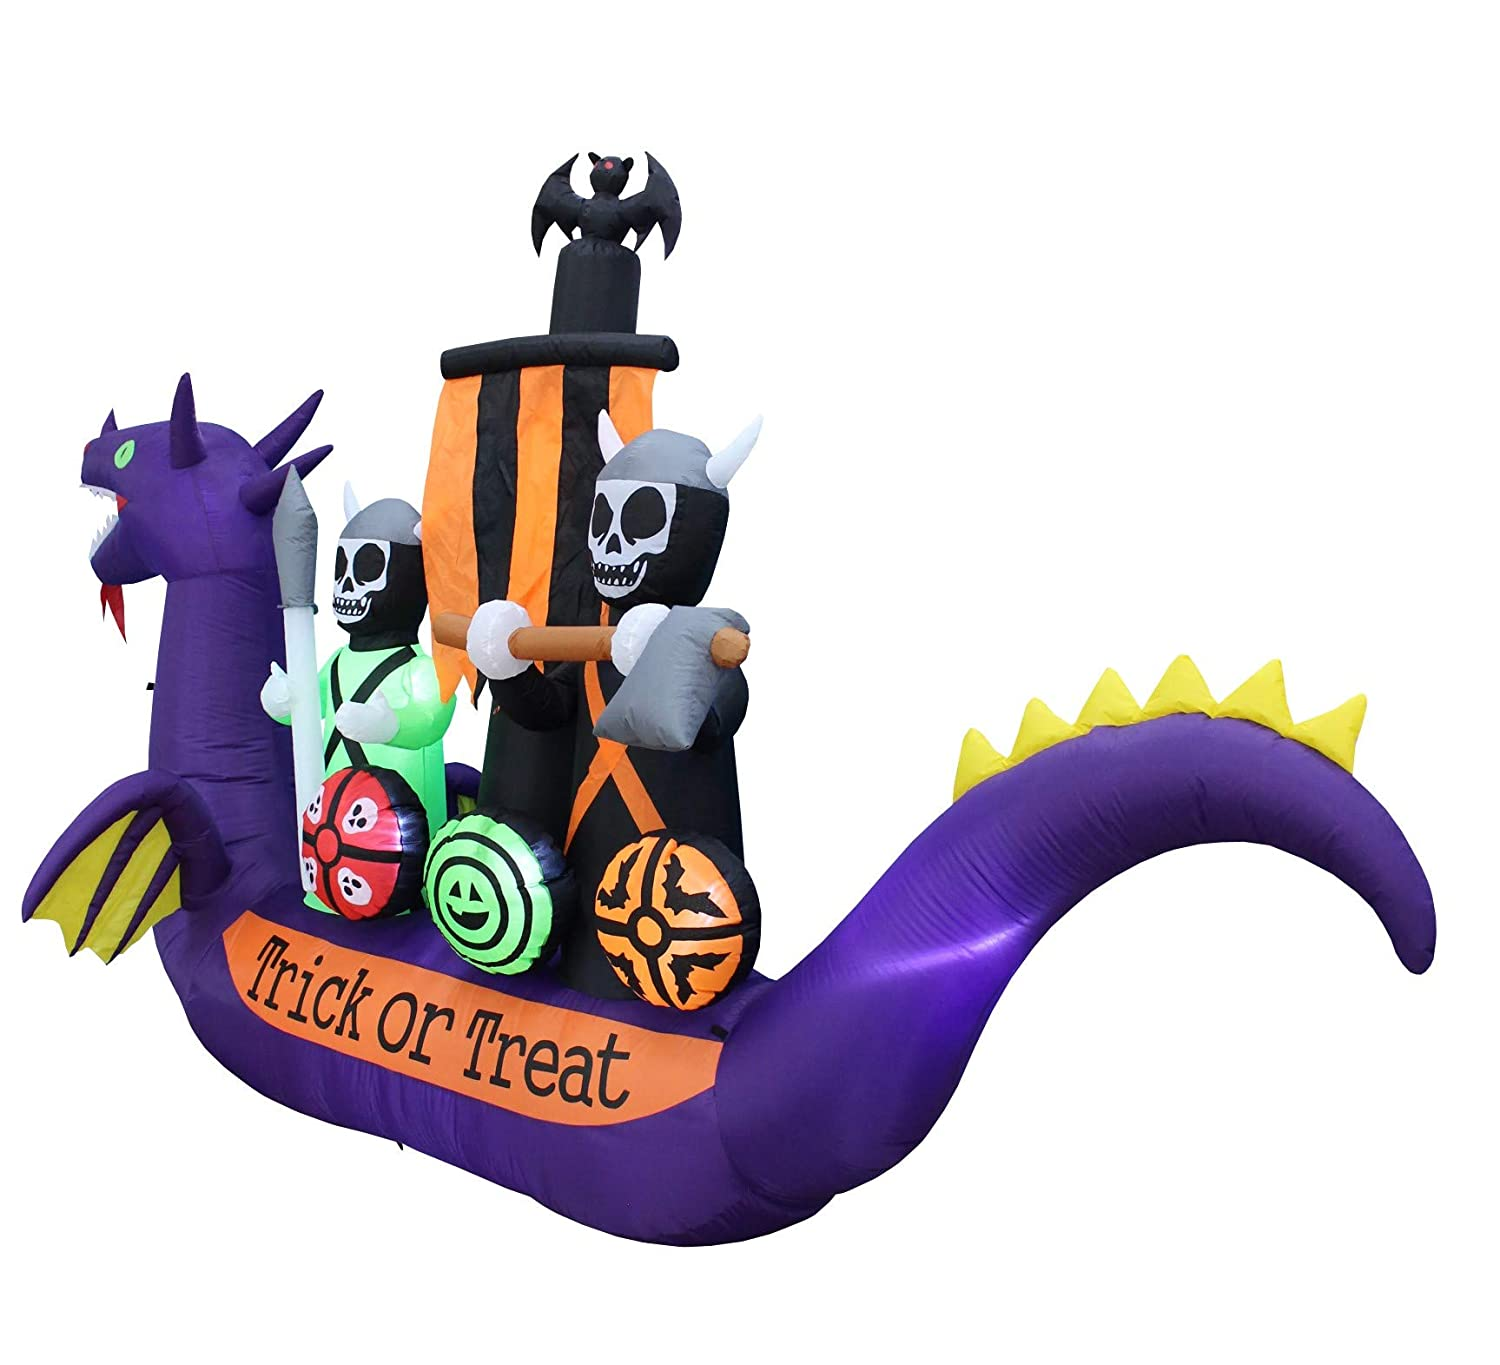 Amazon.com: BZB Goods 11 Foot Long Halloween Inflatable Dragon ...